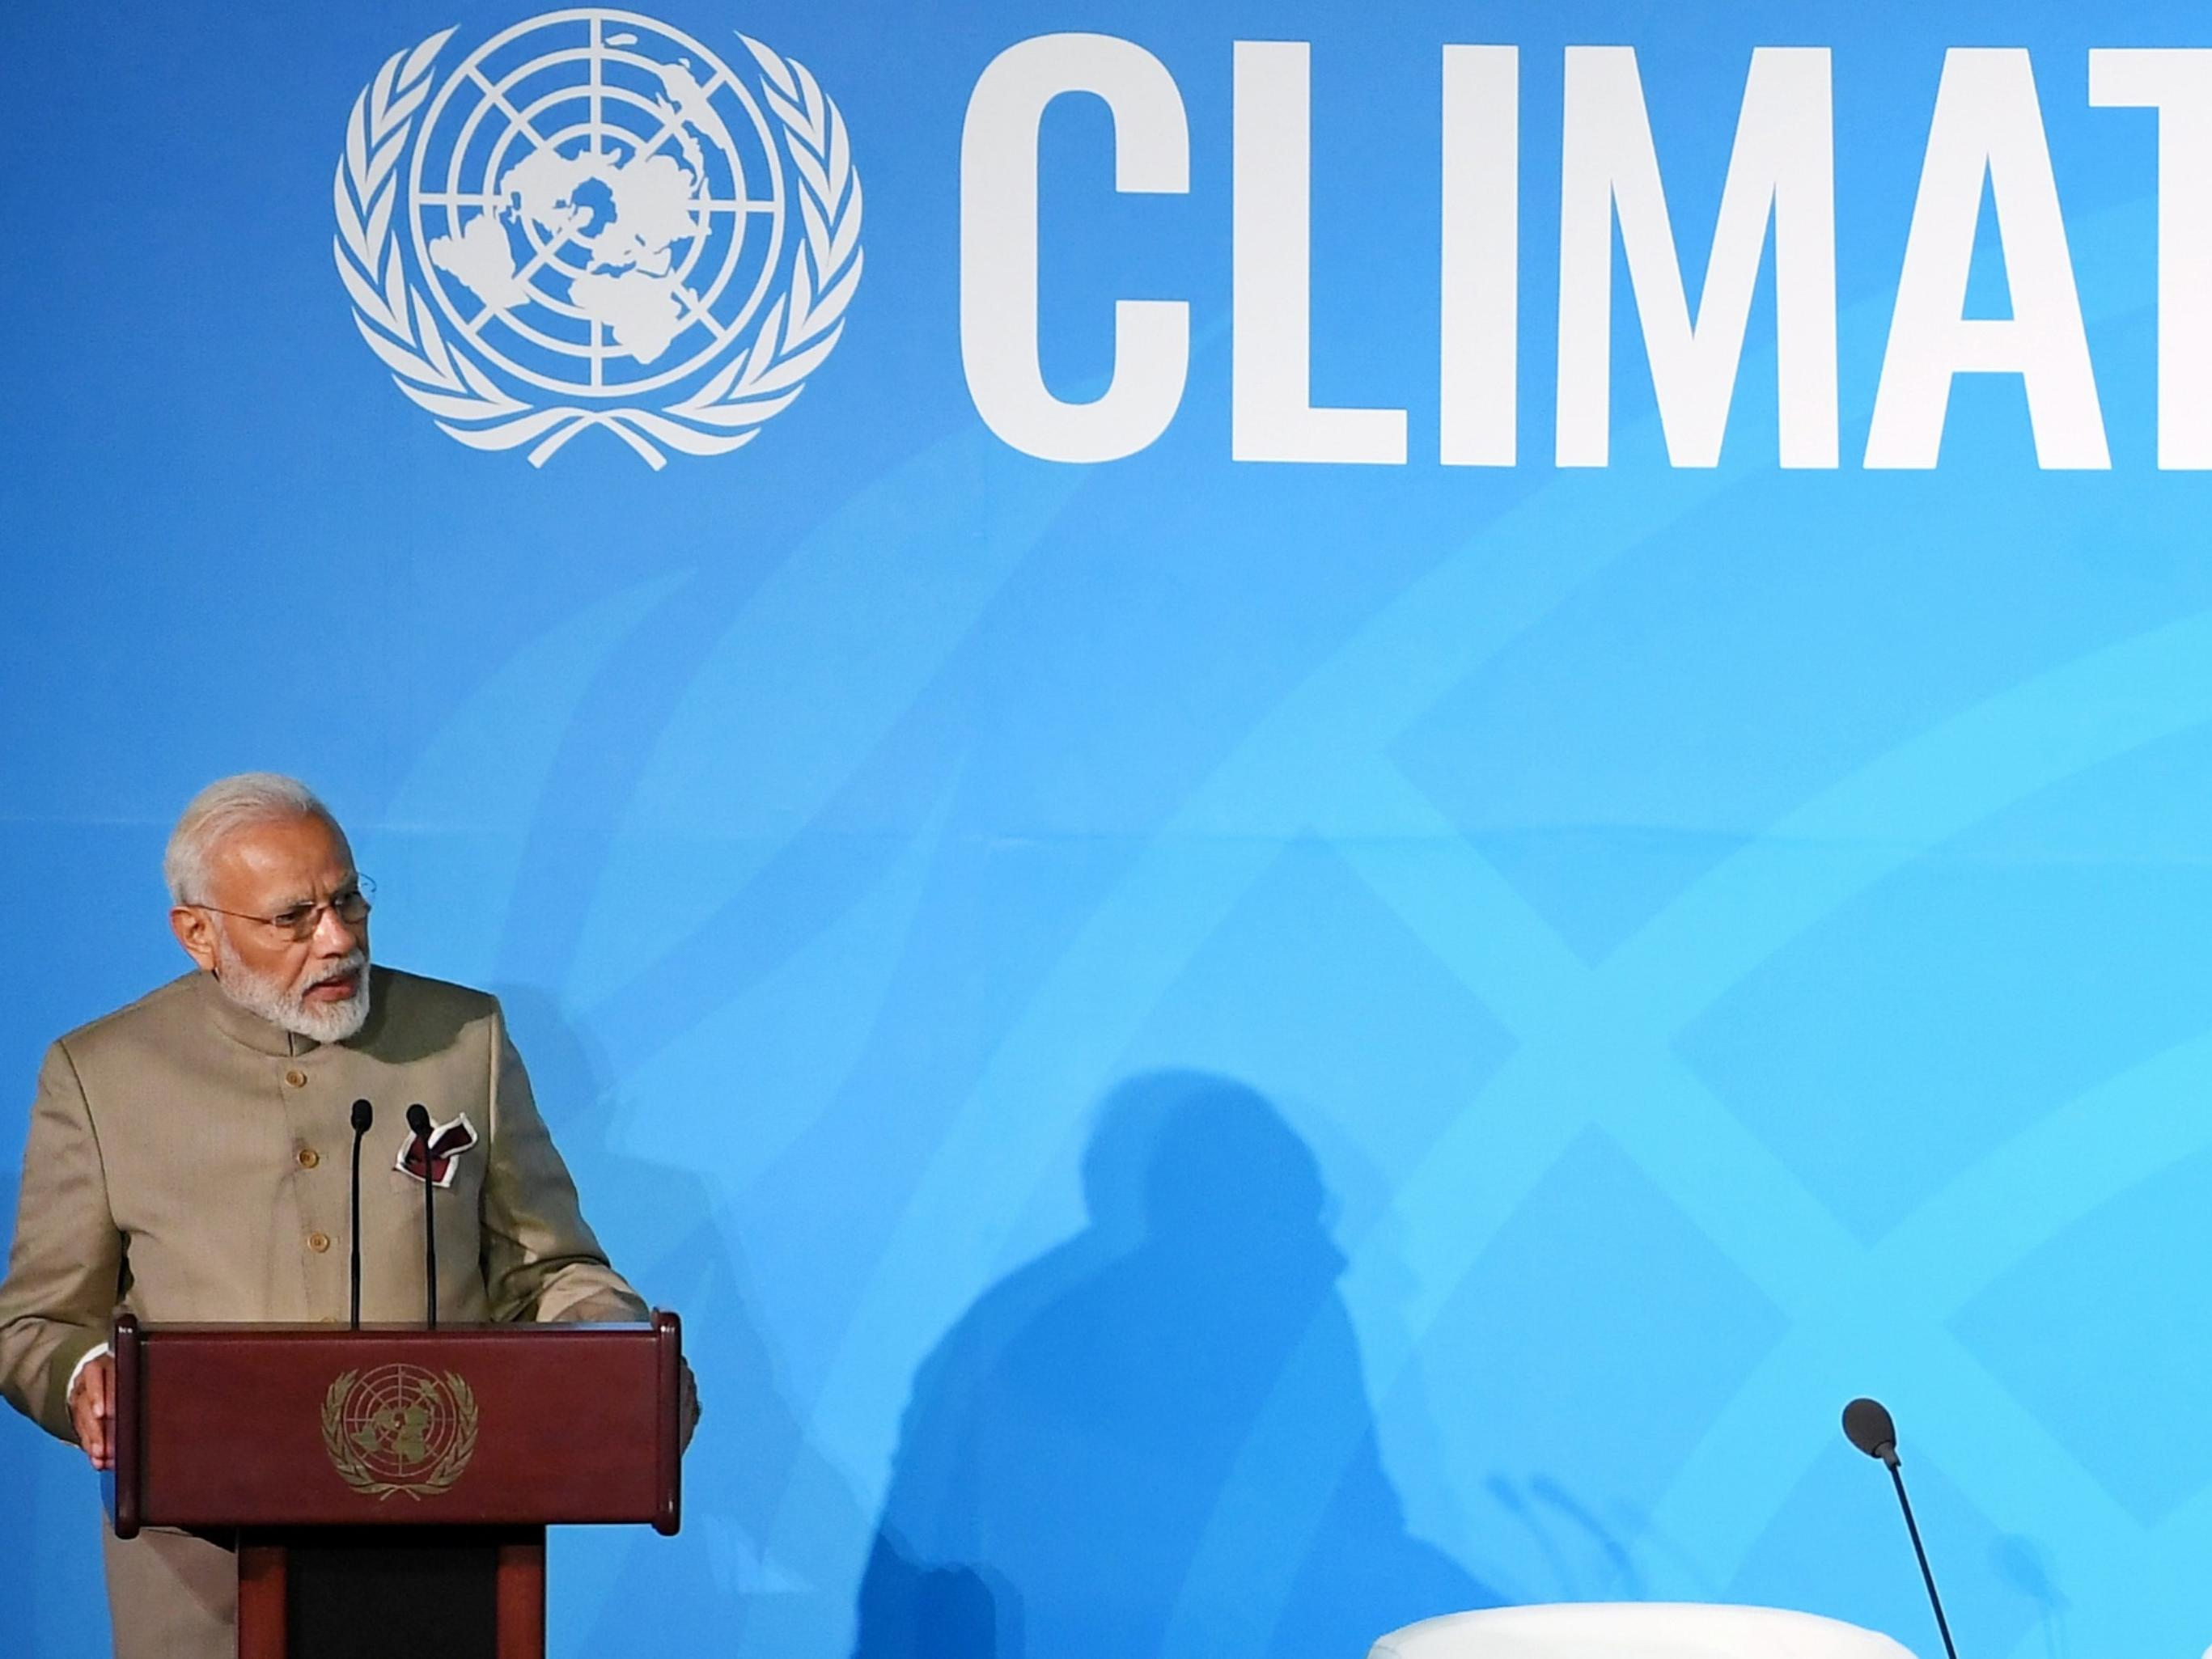 Prime Minister of India, Shri Narendra Modi announced a global Coalition for Disaster Resilient Infrastructure (CDRI), at the UN Climate Action Summit 2019 held in New York City, USA, on September 23, 2019.